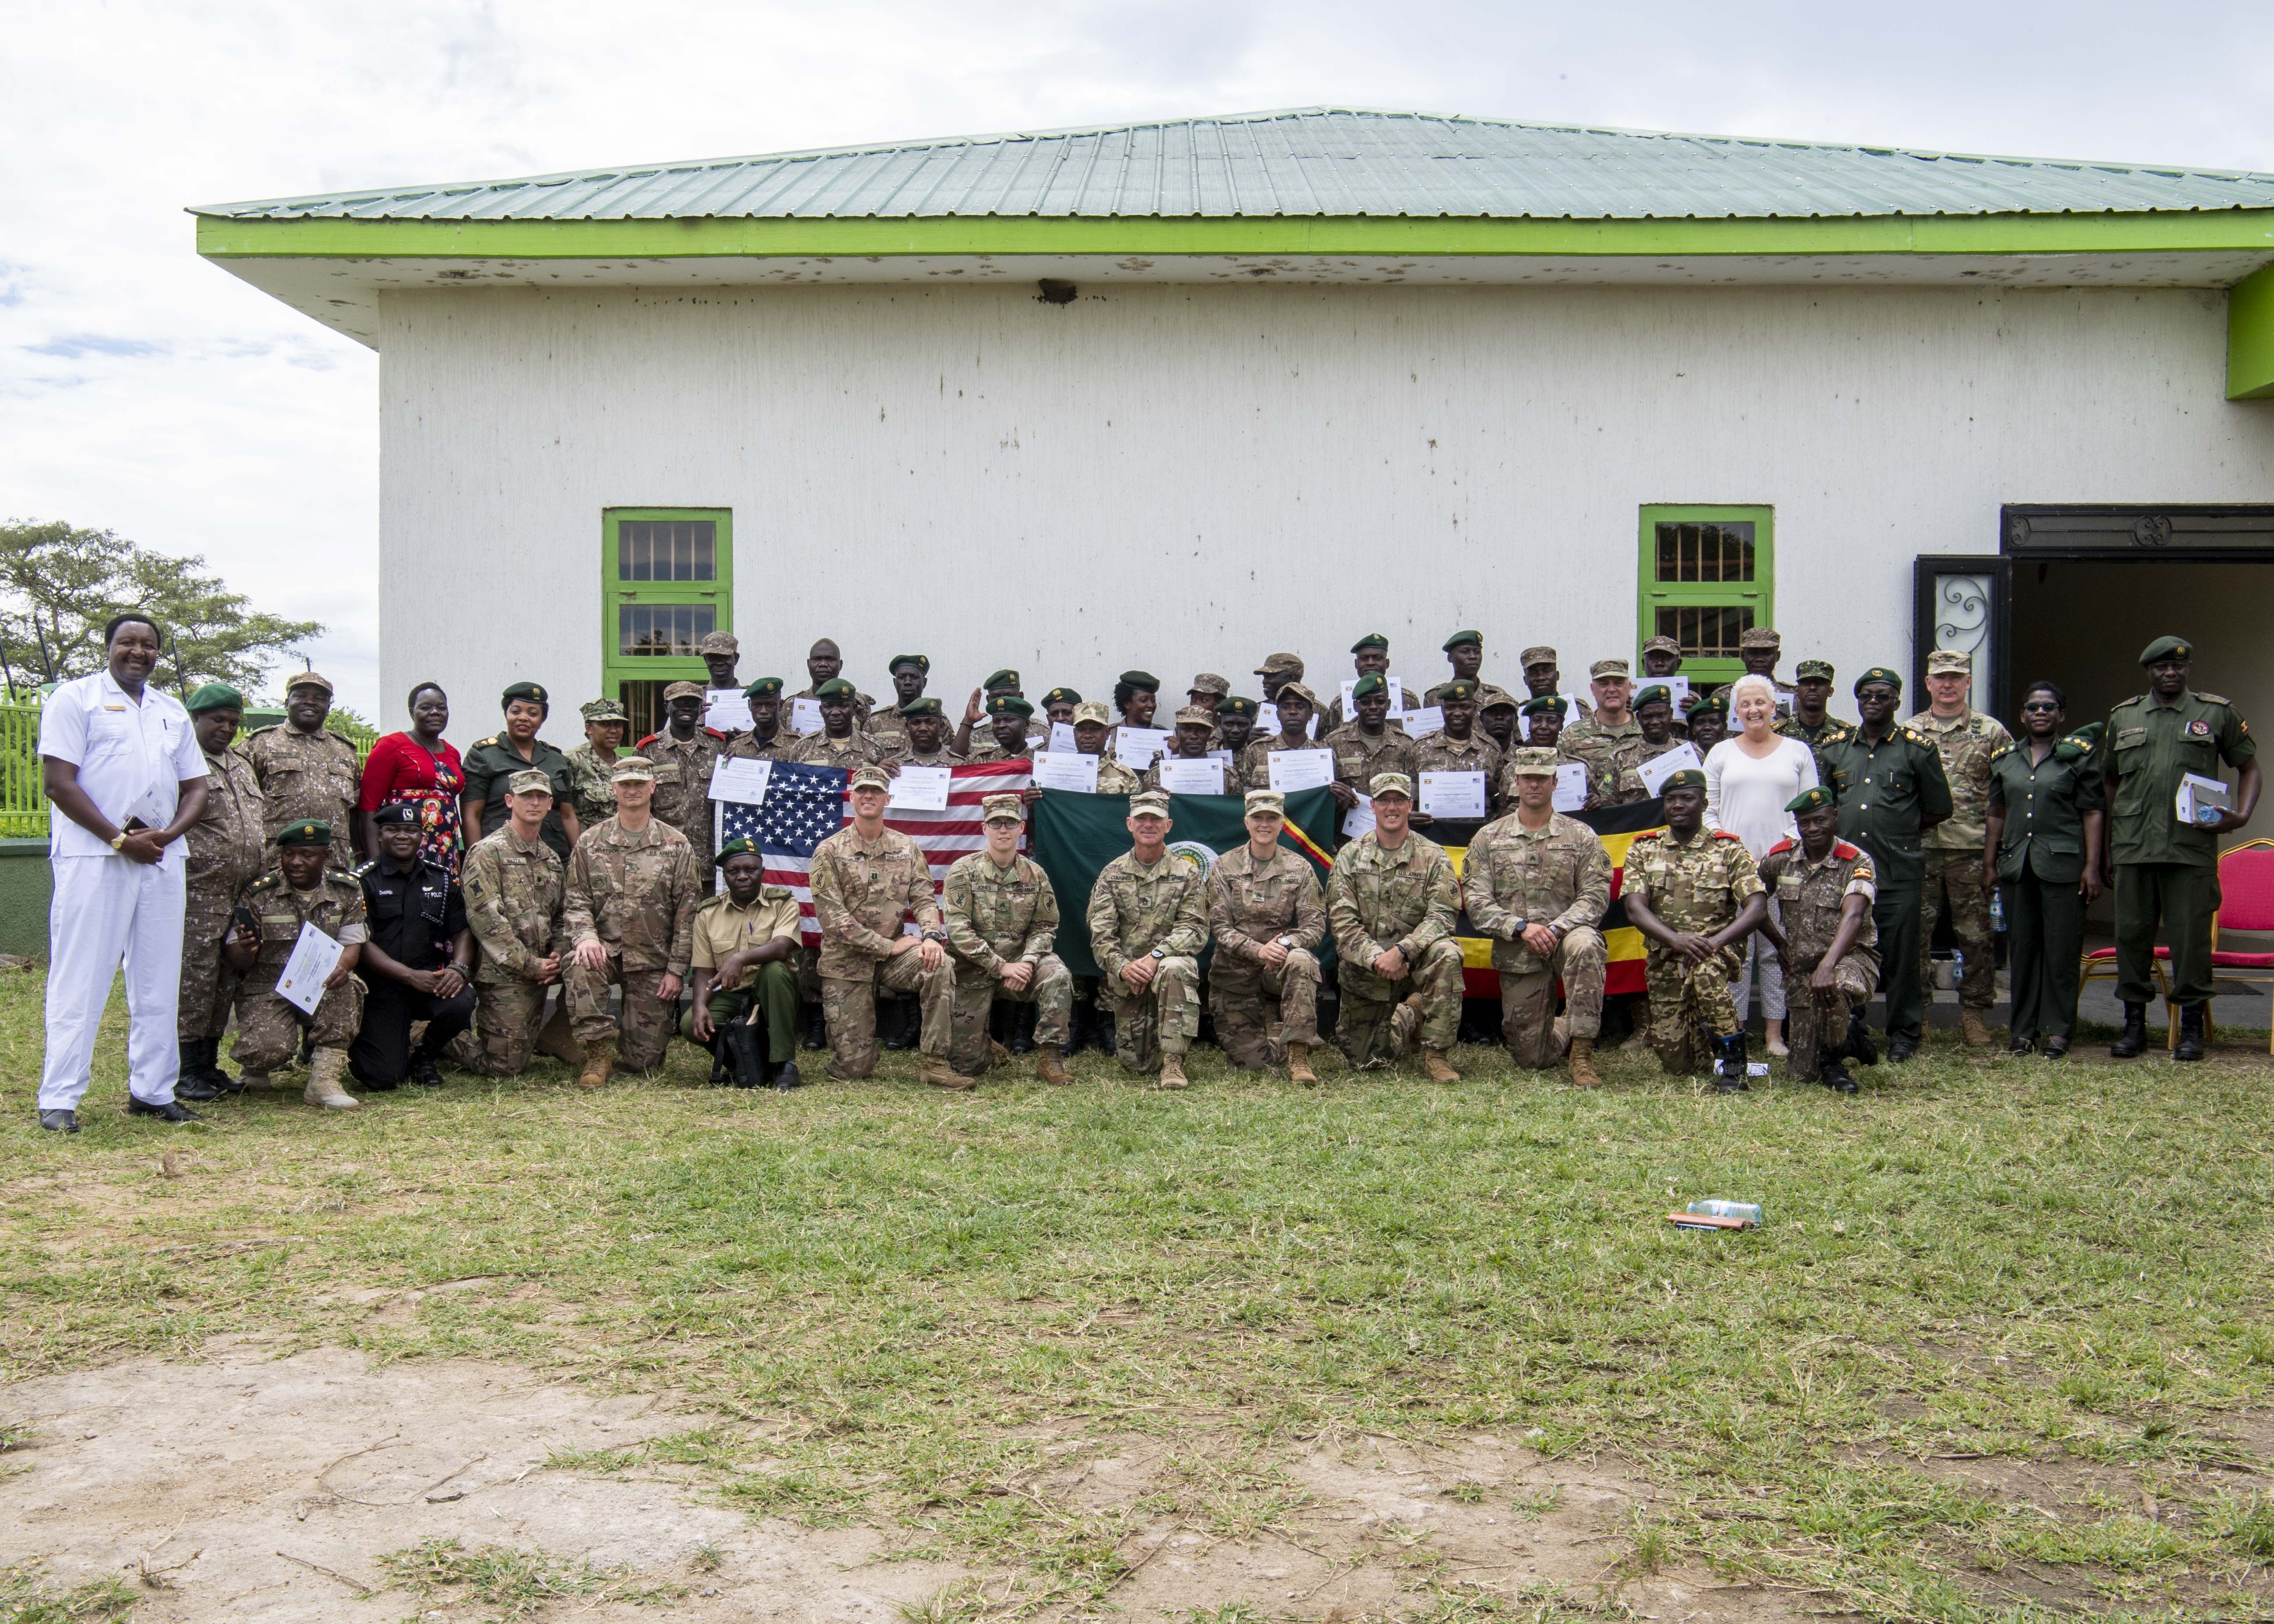 U.S. Ambassador to Uganda Deborah R. Malac; U.S. Air Force Brig. Gen. James R. Kriesel, deputy commanding general of Combined Joint Task Force-Horn of Africa (CJTF-HOA); and Sam Mwandha, executive director of Uganda Wildlife Authority, pose for a group photo with Counter Illicit Trafficking Junior Leadership Course graduates and Ugandan supporters at Queen Elizabeth Park, Uganda, Oct. 10, 2019. Twenty-five UWA Rangers graduated the course. (U.S. Air Force photo by Staff Sgt. J.D.  Strong II)